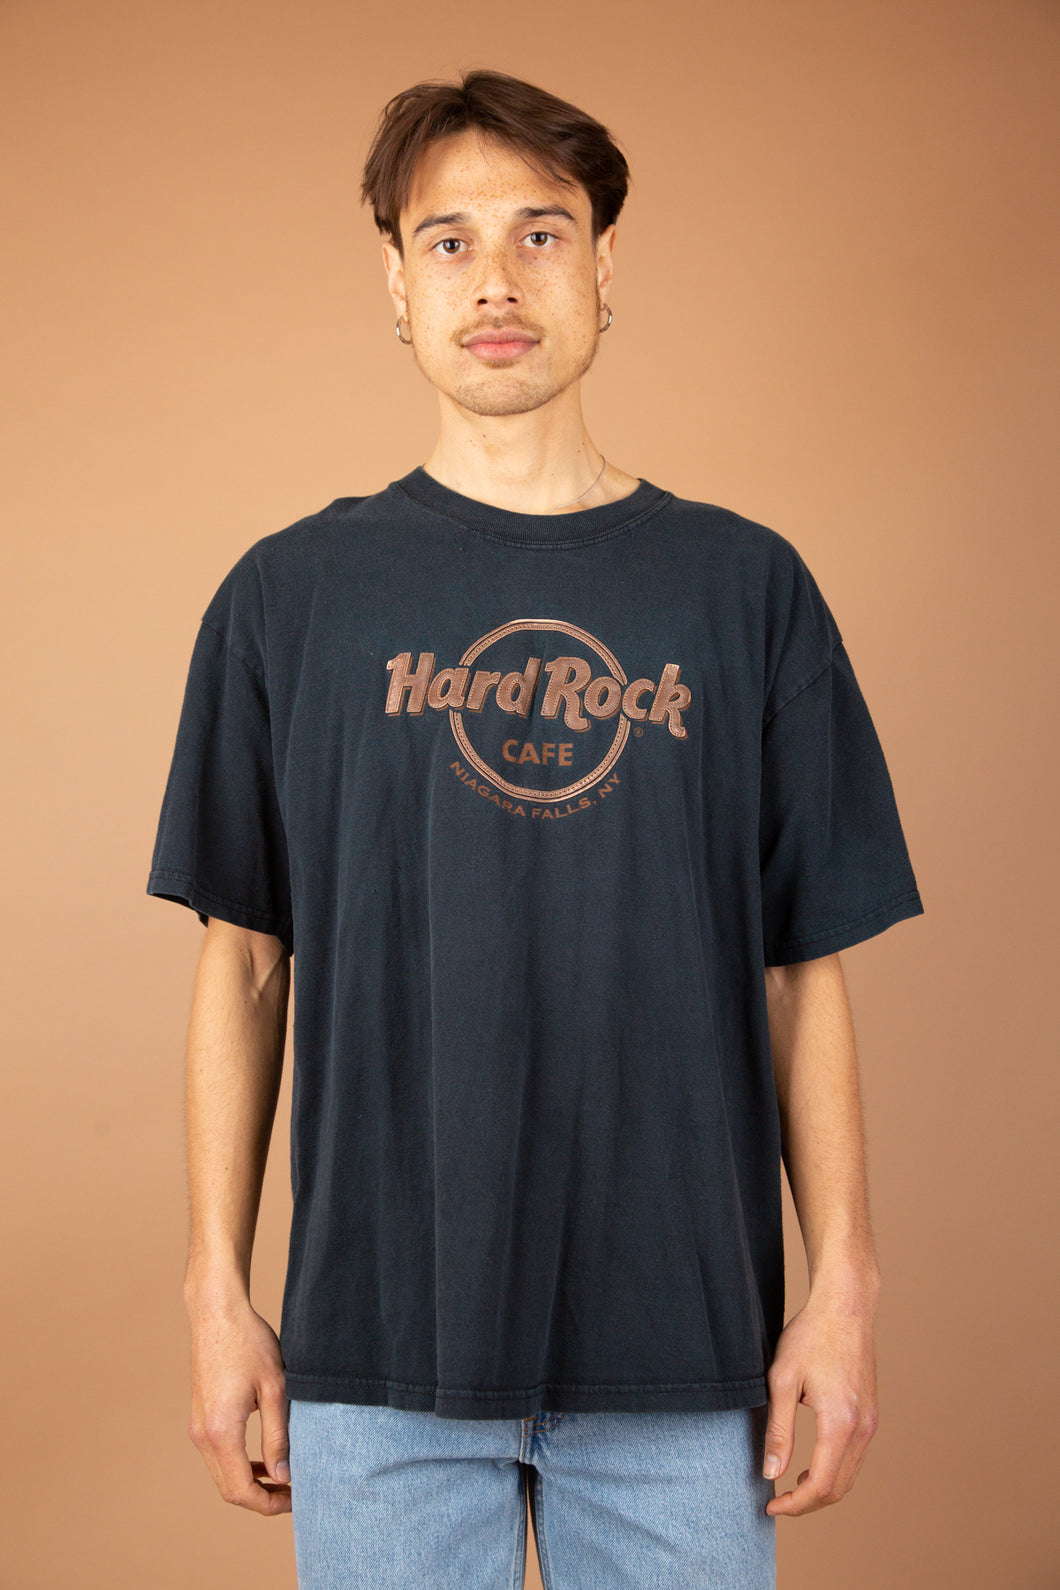 Vintage hard rock cafe tee. magichollow.